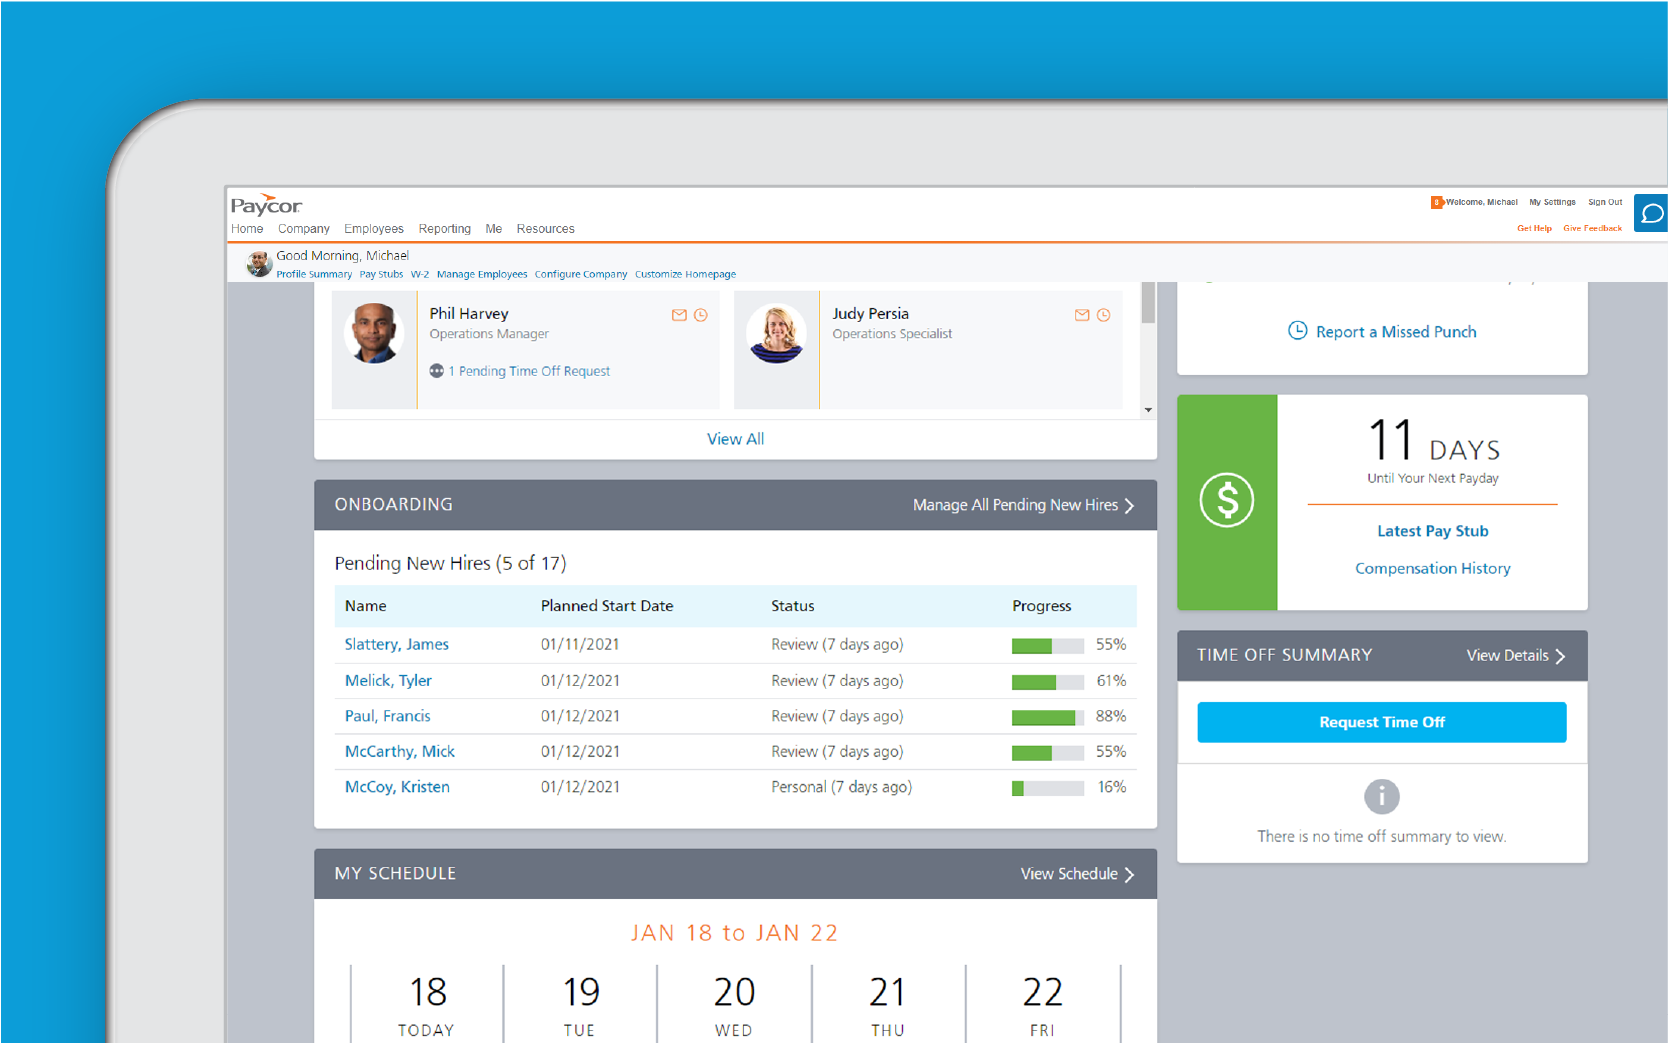 Corner of tablet showing Paycor employee onboarding dashboard against blue background